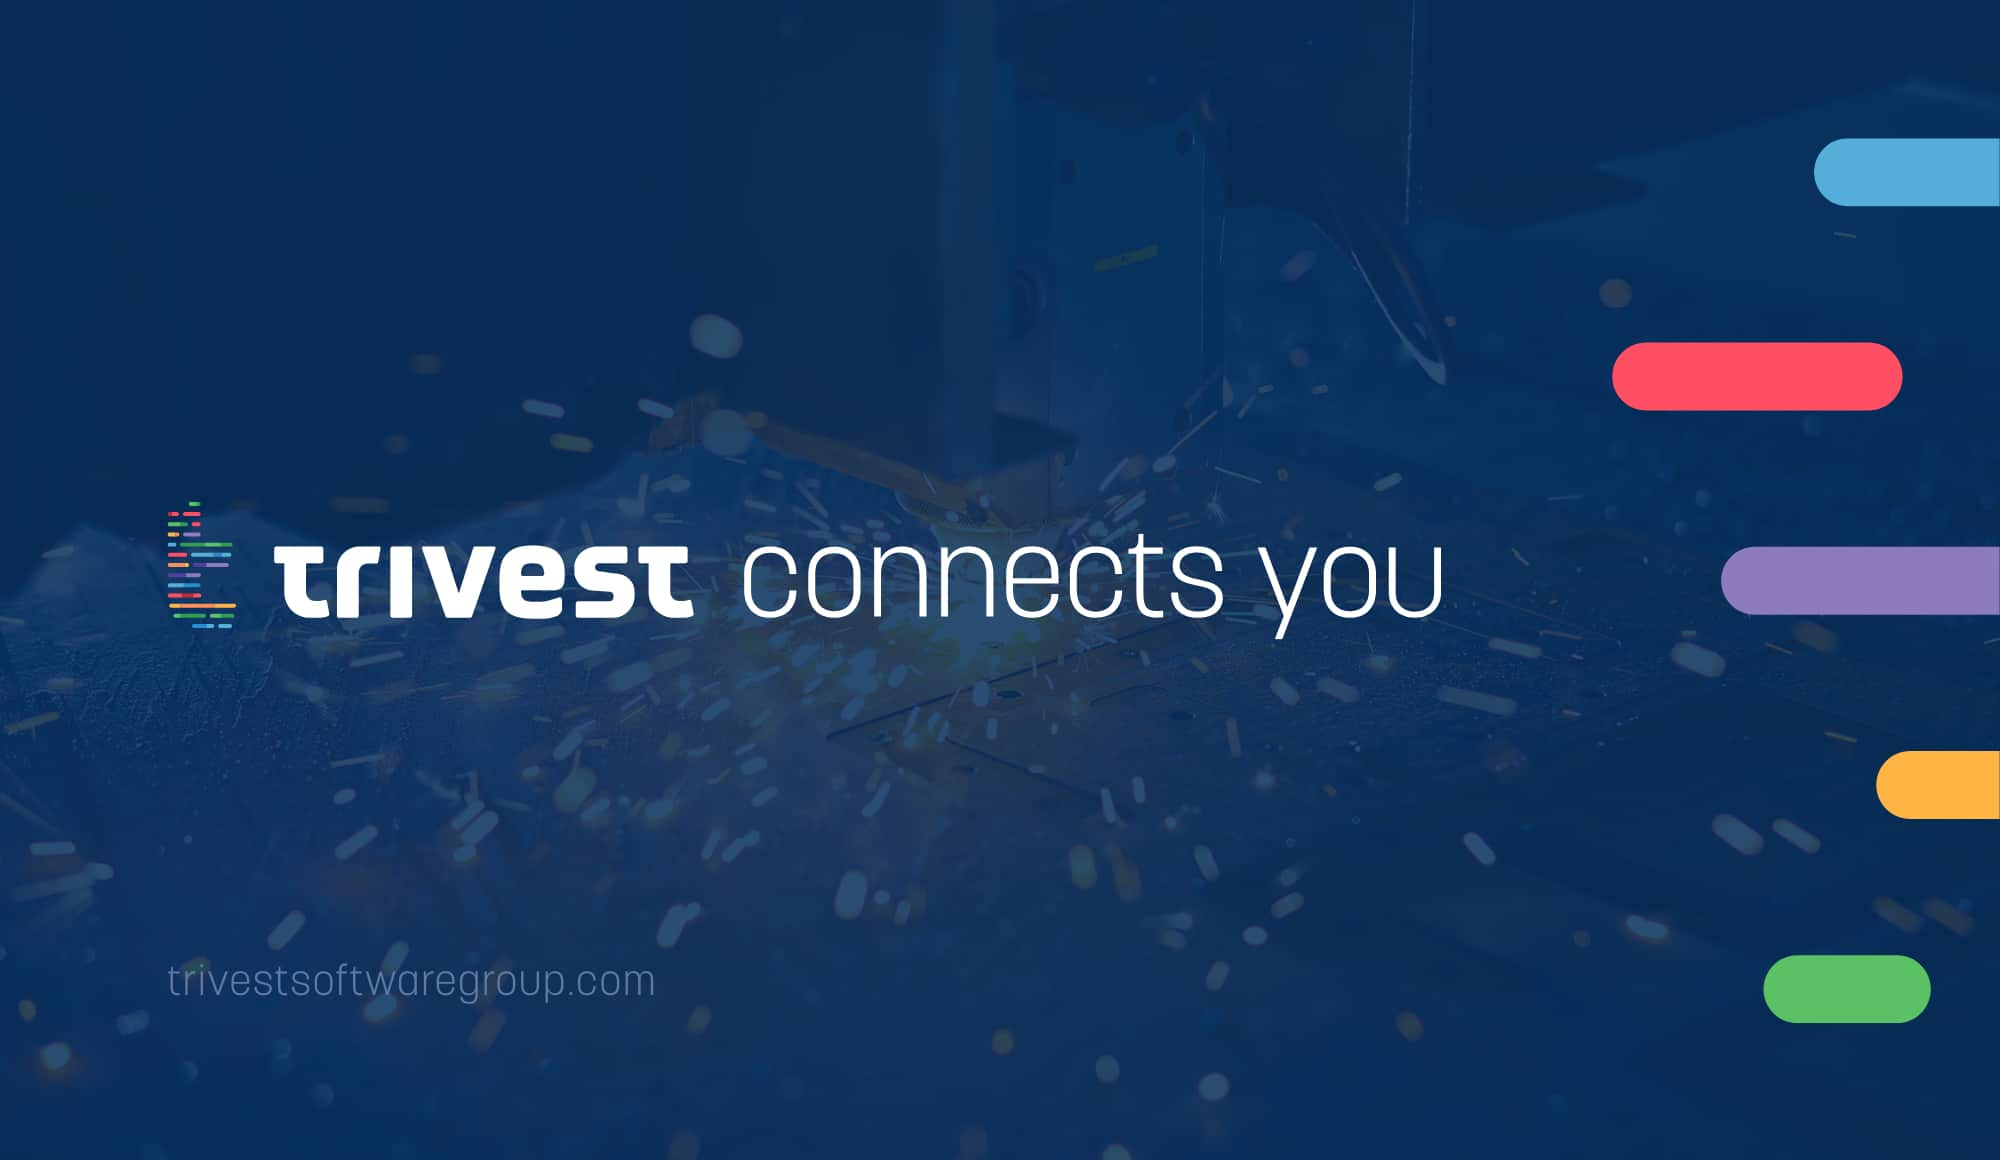 Trivest connects you